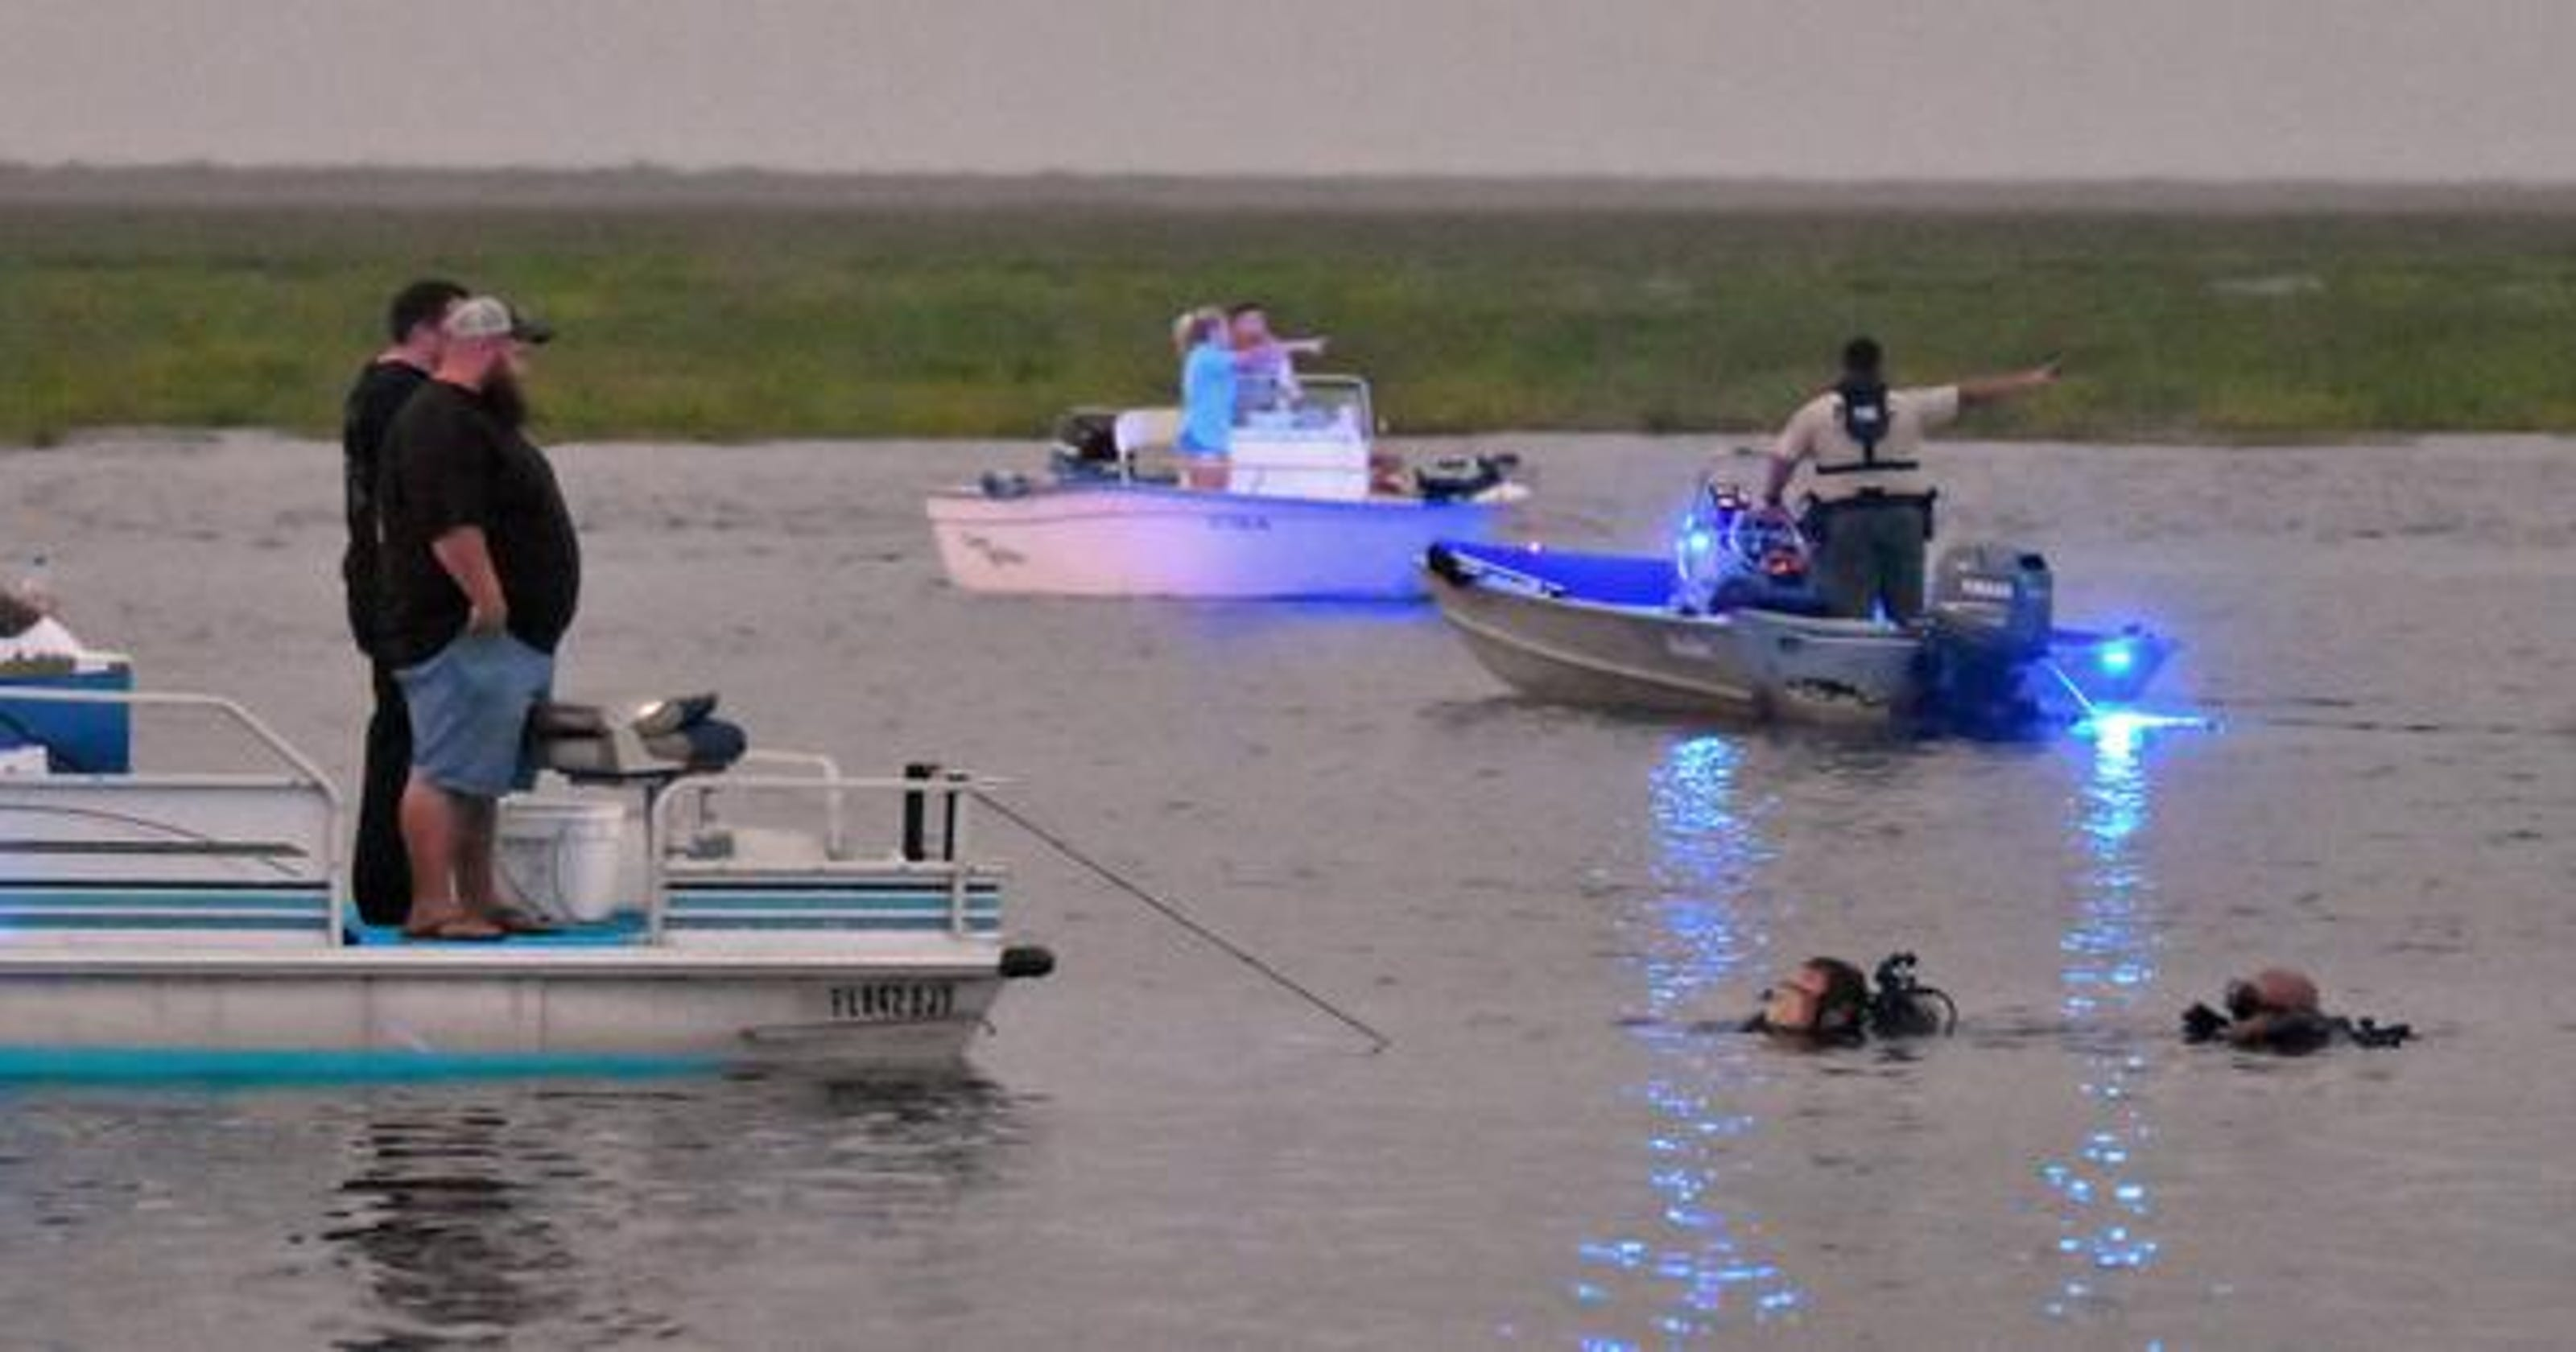 Search went for hours Sunday after Brevard airboat crash